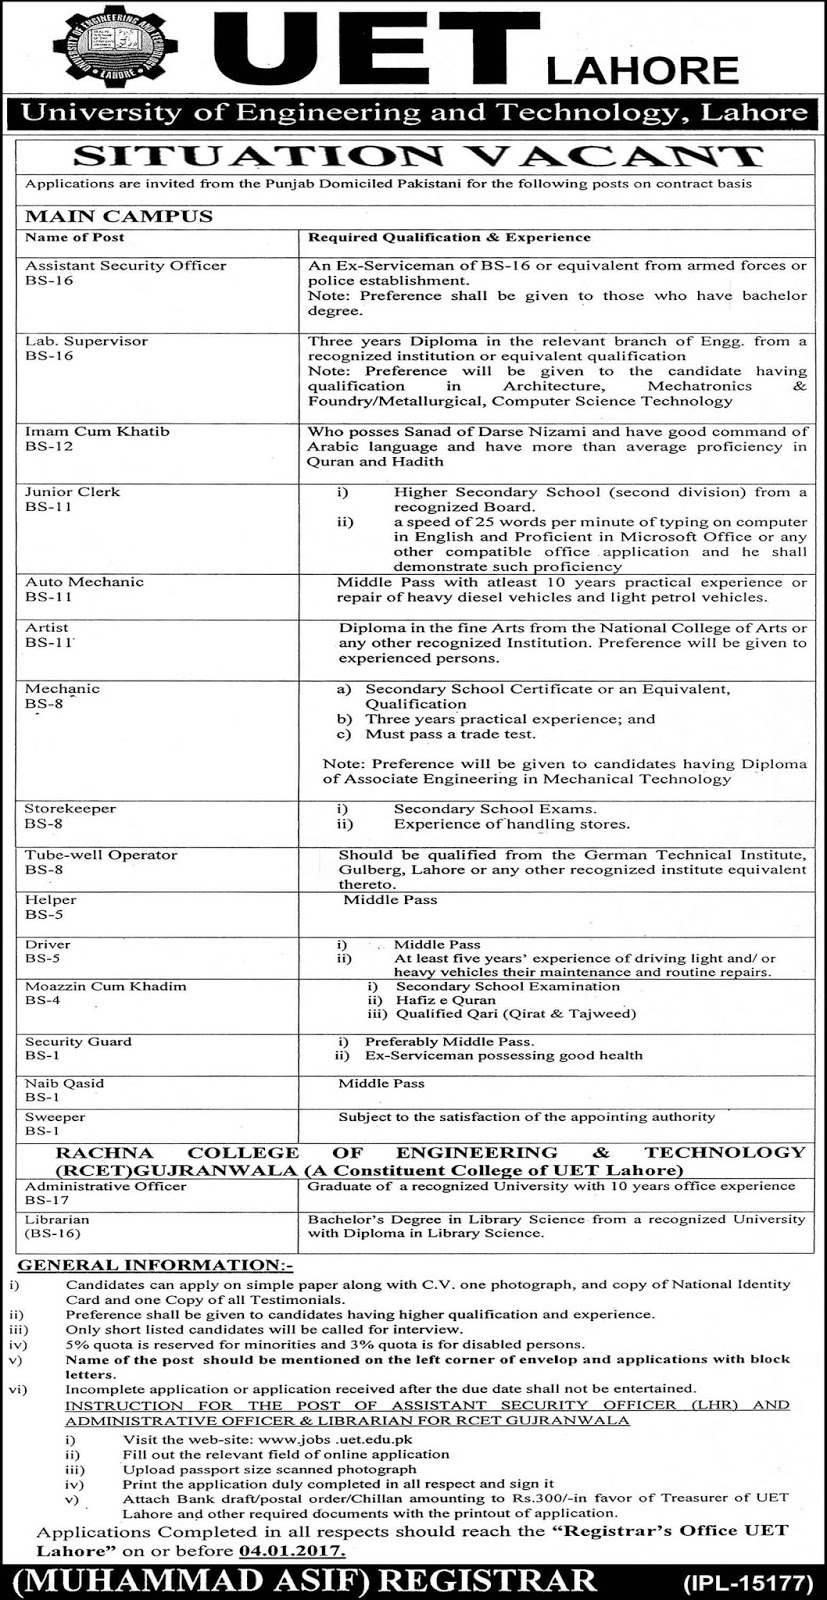 University of Engineering and Technology Lahore jobs